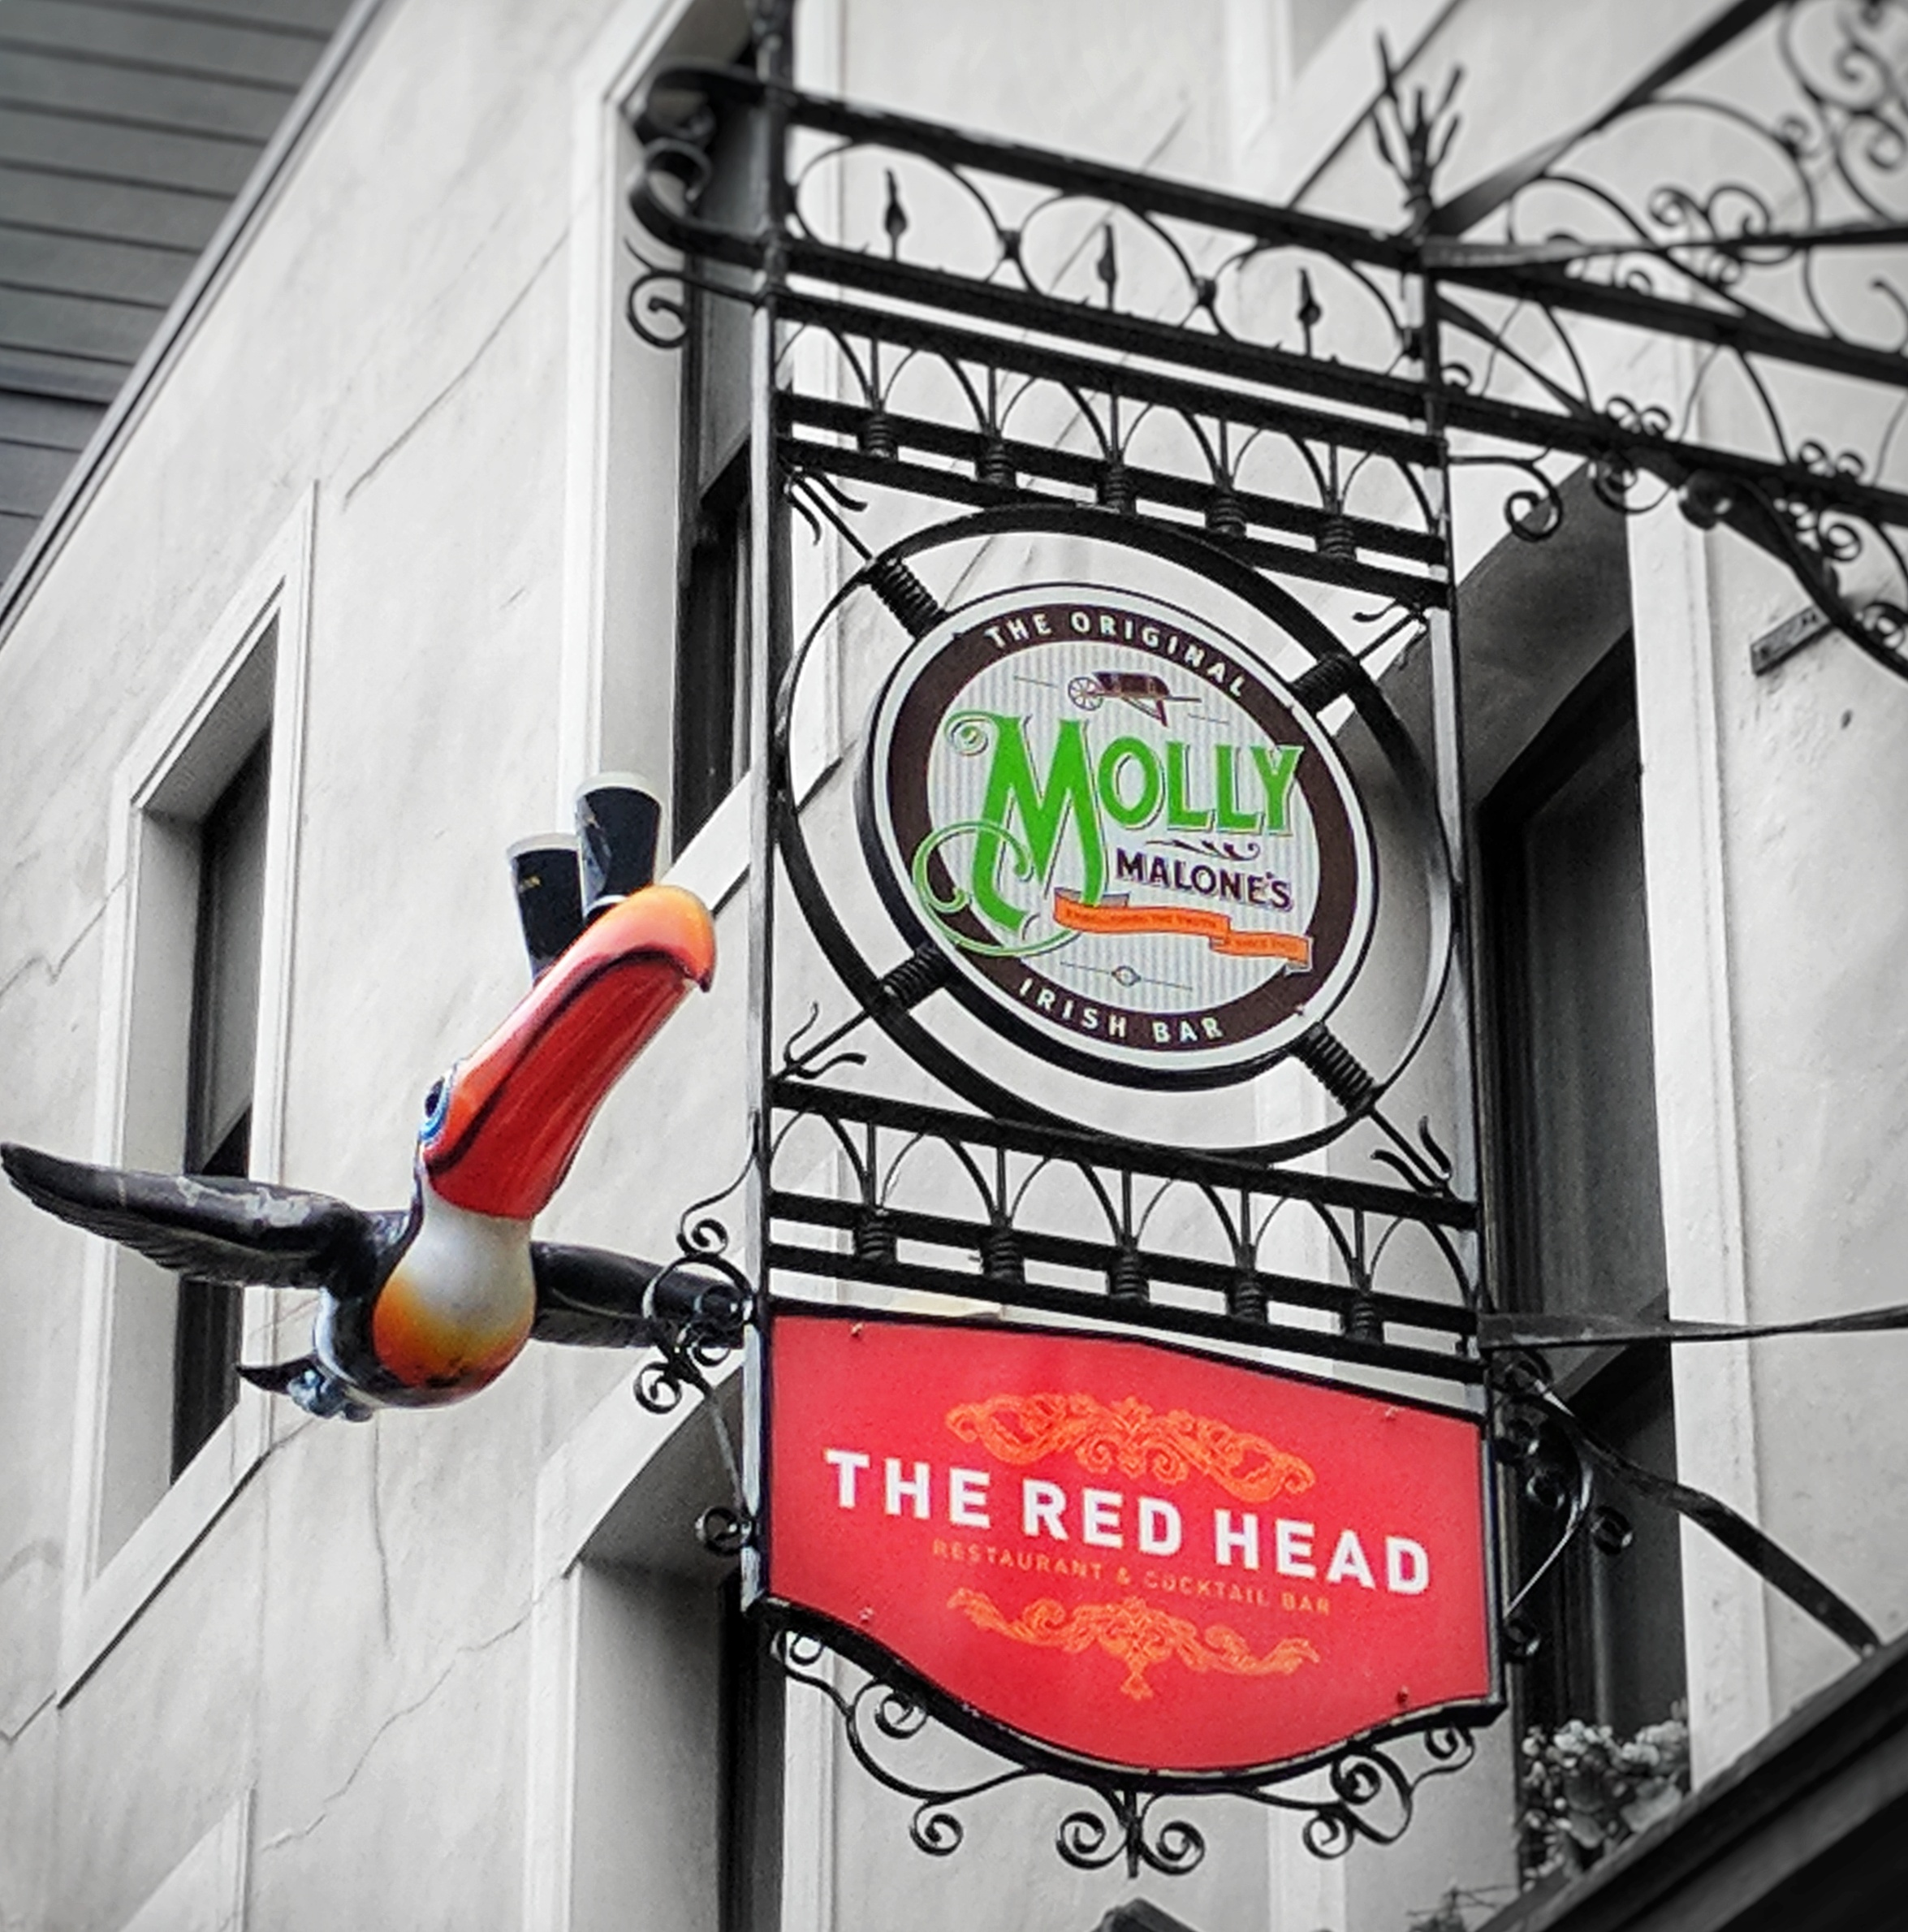 Toucan and Molly Malone's pub signs